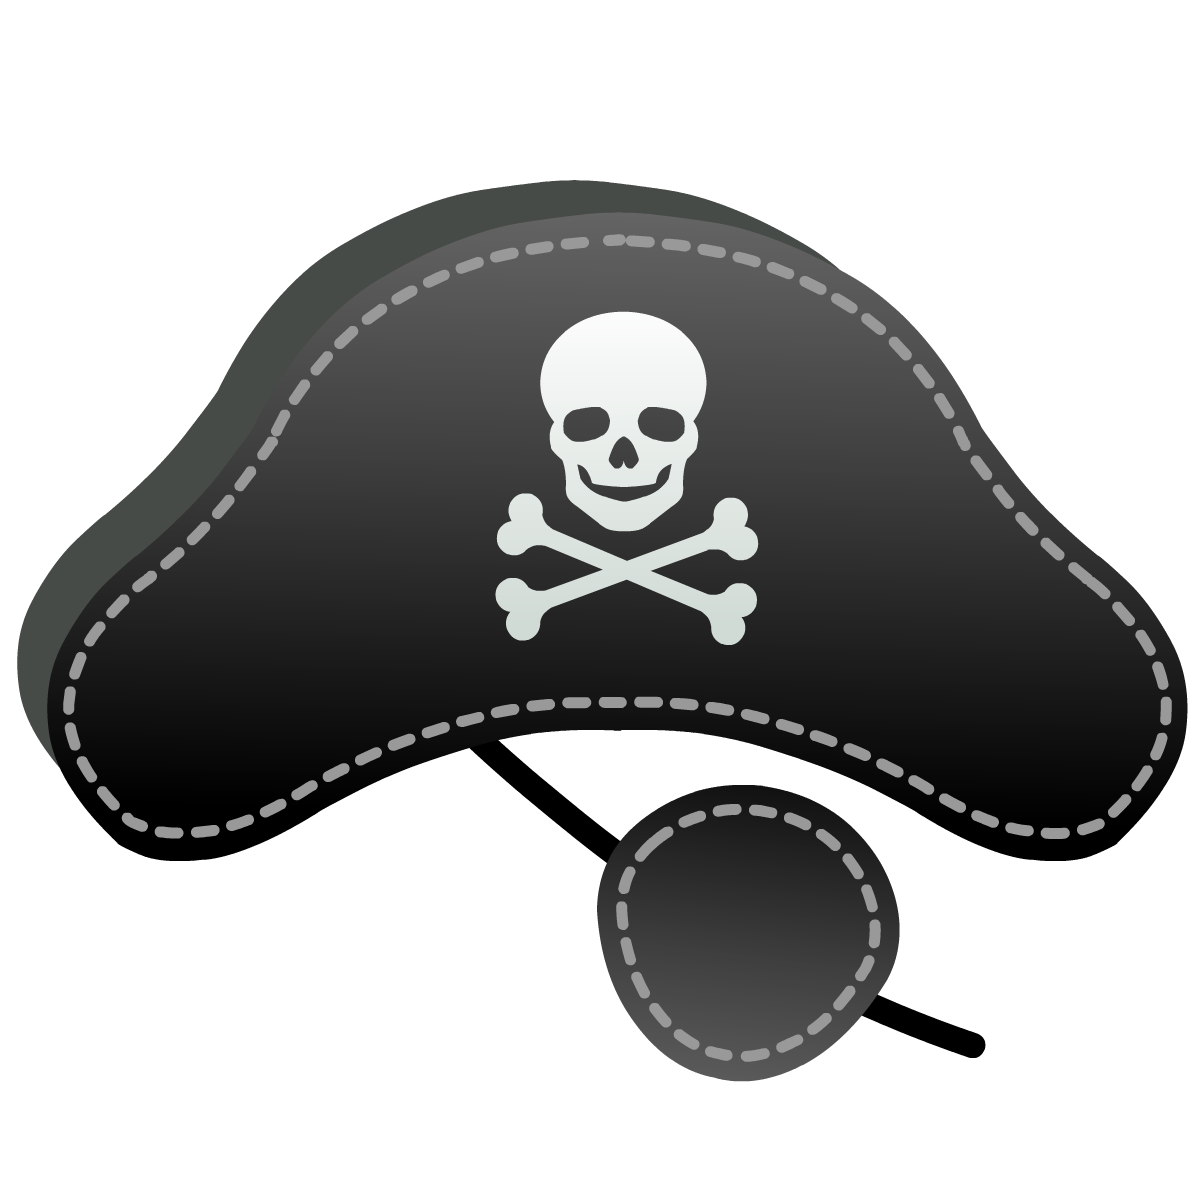 Halloween crafts: pirate hat and eye patch mask